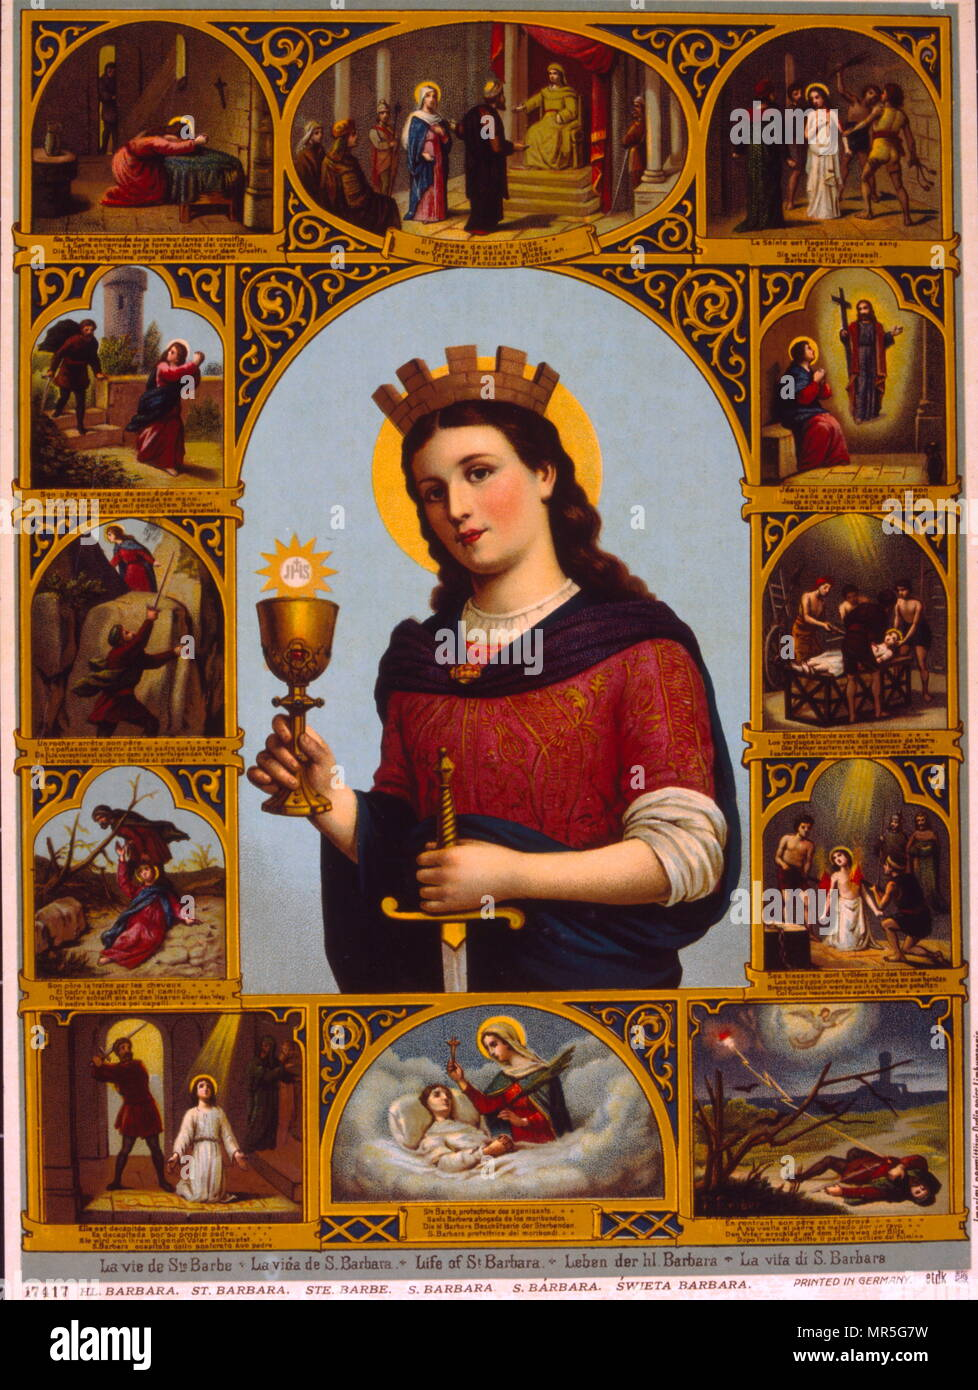 French 19th century, illustration, showing Saint Barbara, known in the Eastern Orthodox Church as the Great Martyr Barbara, was an early Christian Greek saint and martyr. Accounts place her in the 3rd century in the Greek city Nicomedia, present-day Turkey or in Heliopolis of Phoenicia, present-day Baalbek, Lebanon. - Stock Image